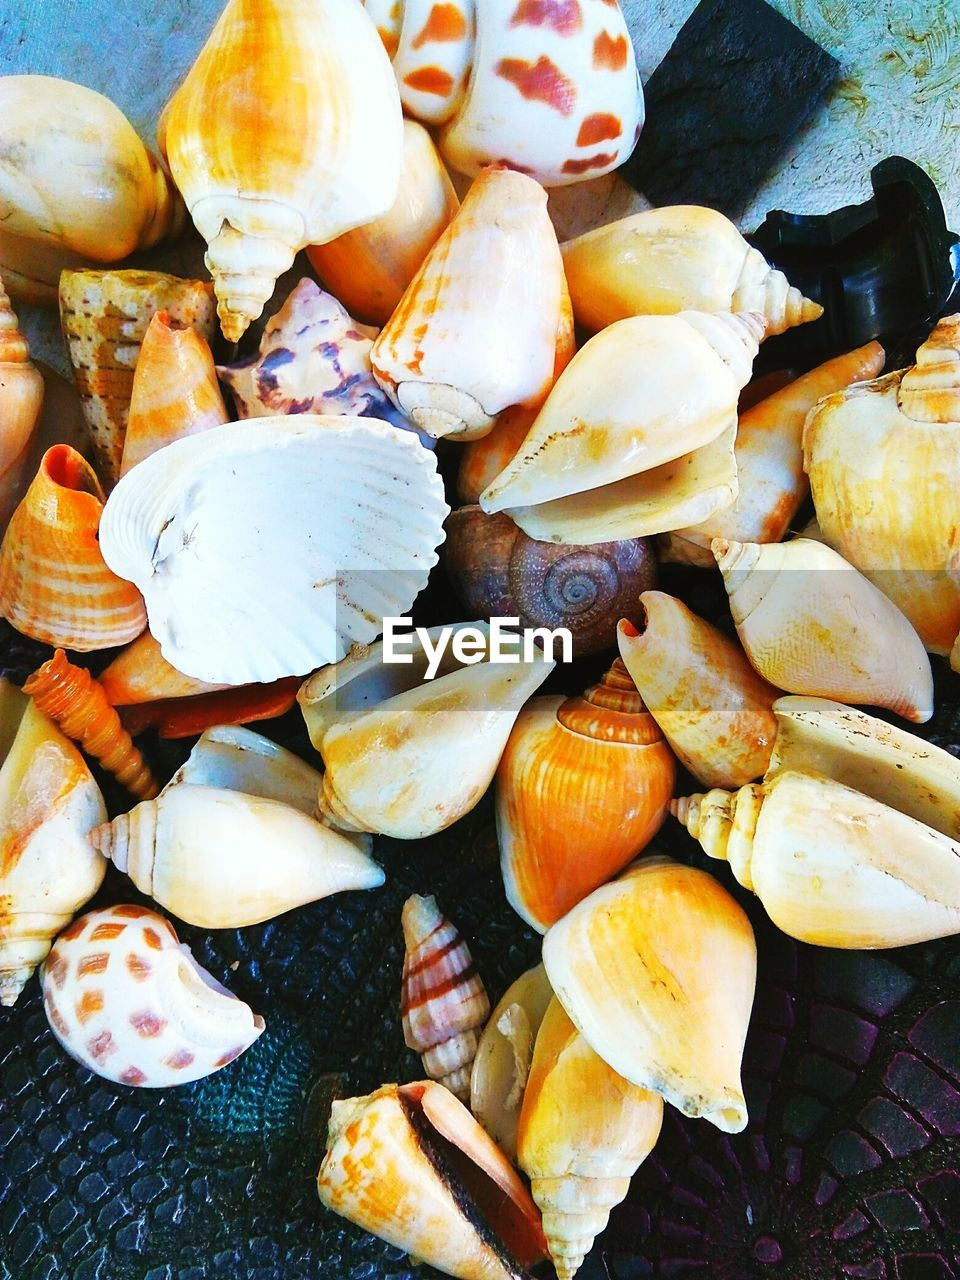 food, food and drink, healthy eating, wellbeing, close-up, no people, freshness, large group of objects, high angle view, abundance, still life, day, animal wildlife, shell, vegetable, animal, outdoors, nature, animal shell